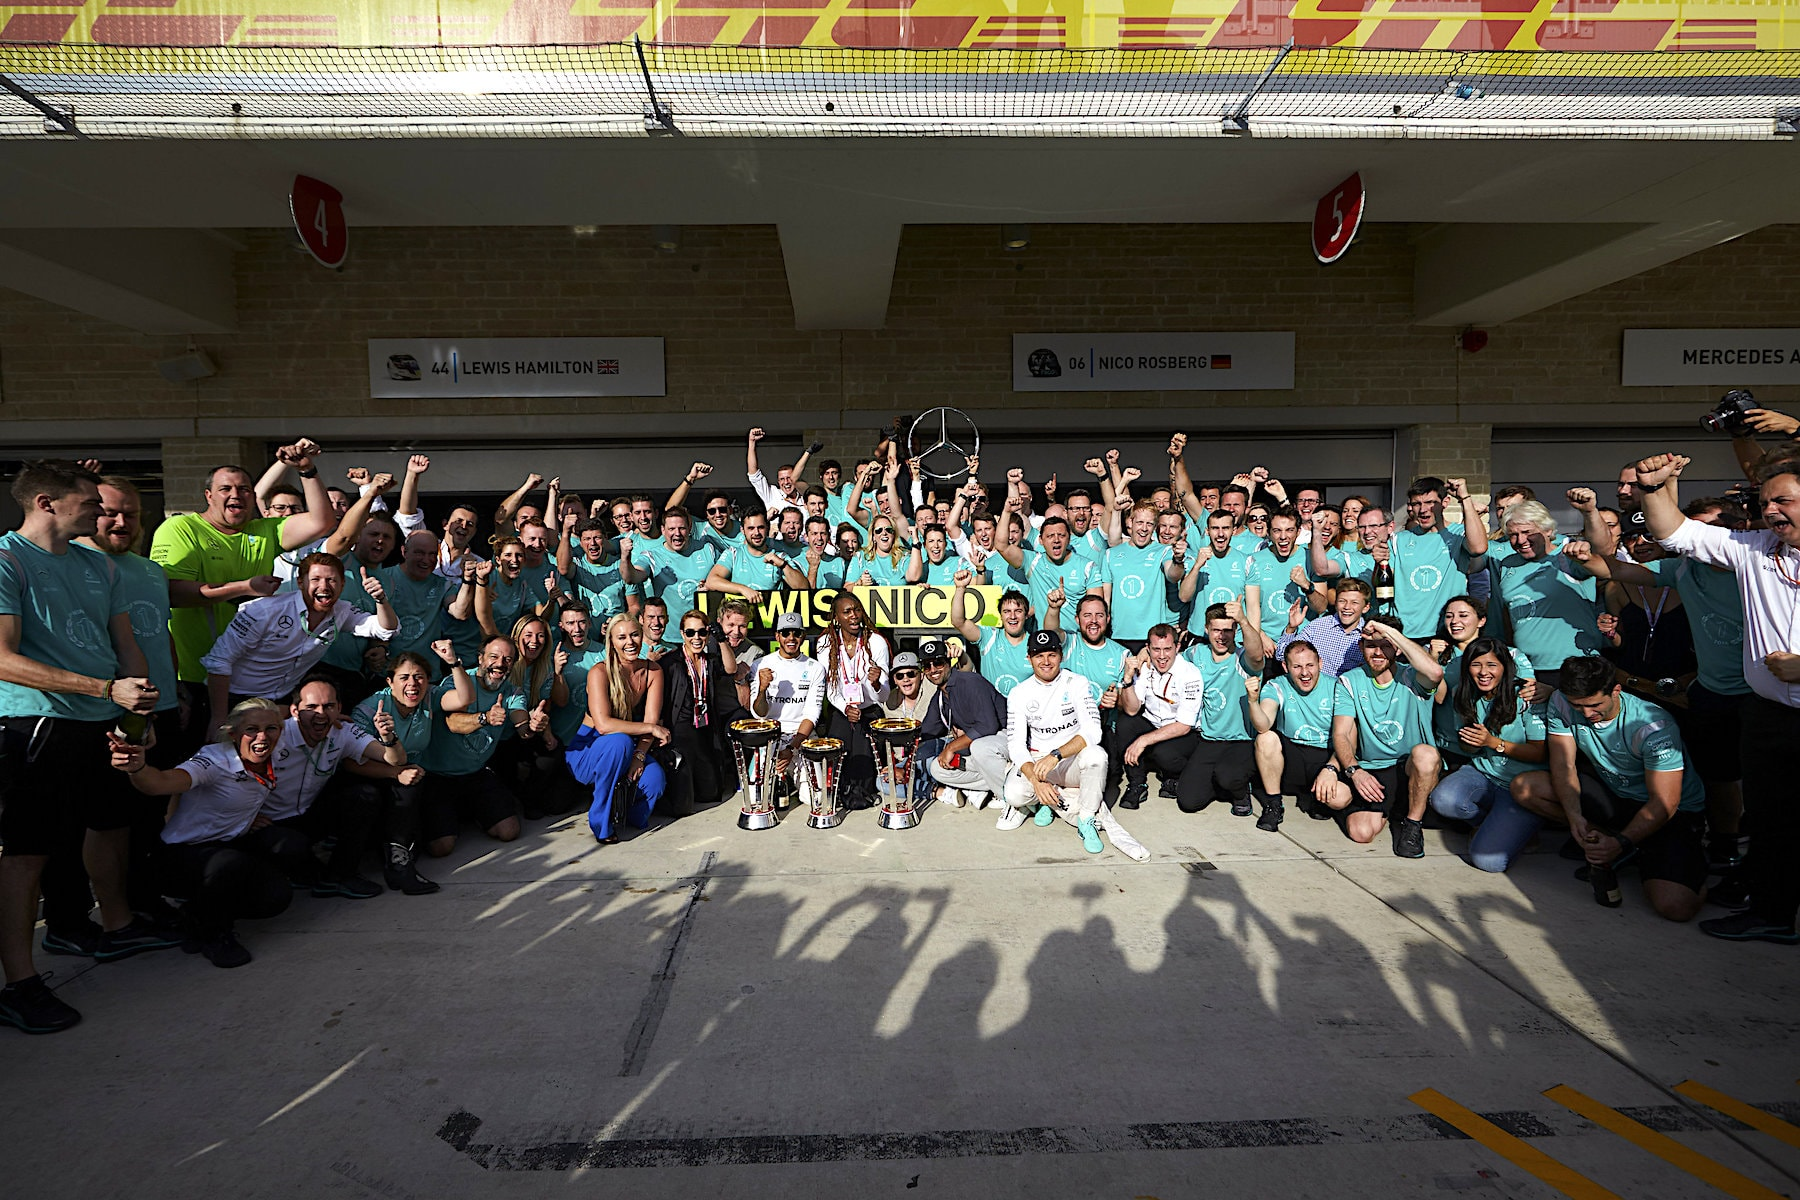 X 2016 Mercedes team celebrating 1 - 2 at 2016 USGP copy.jpg